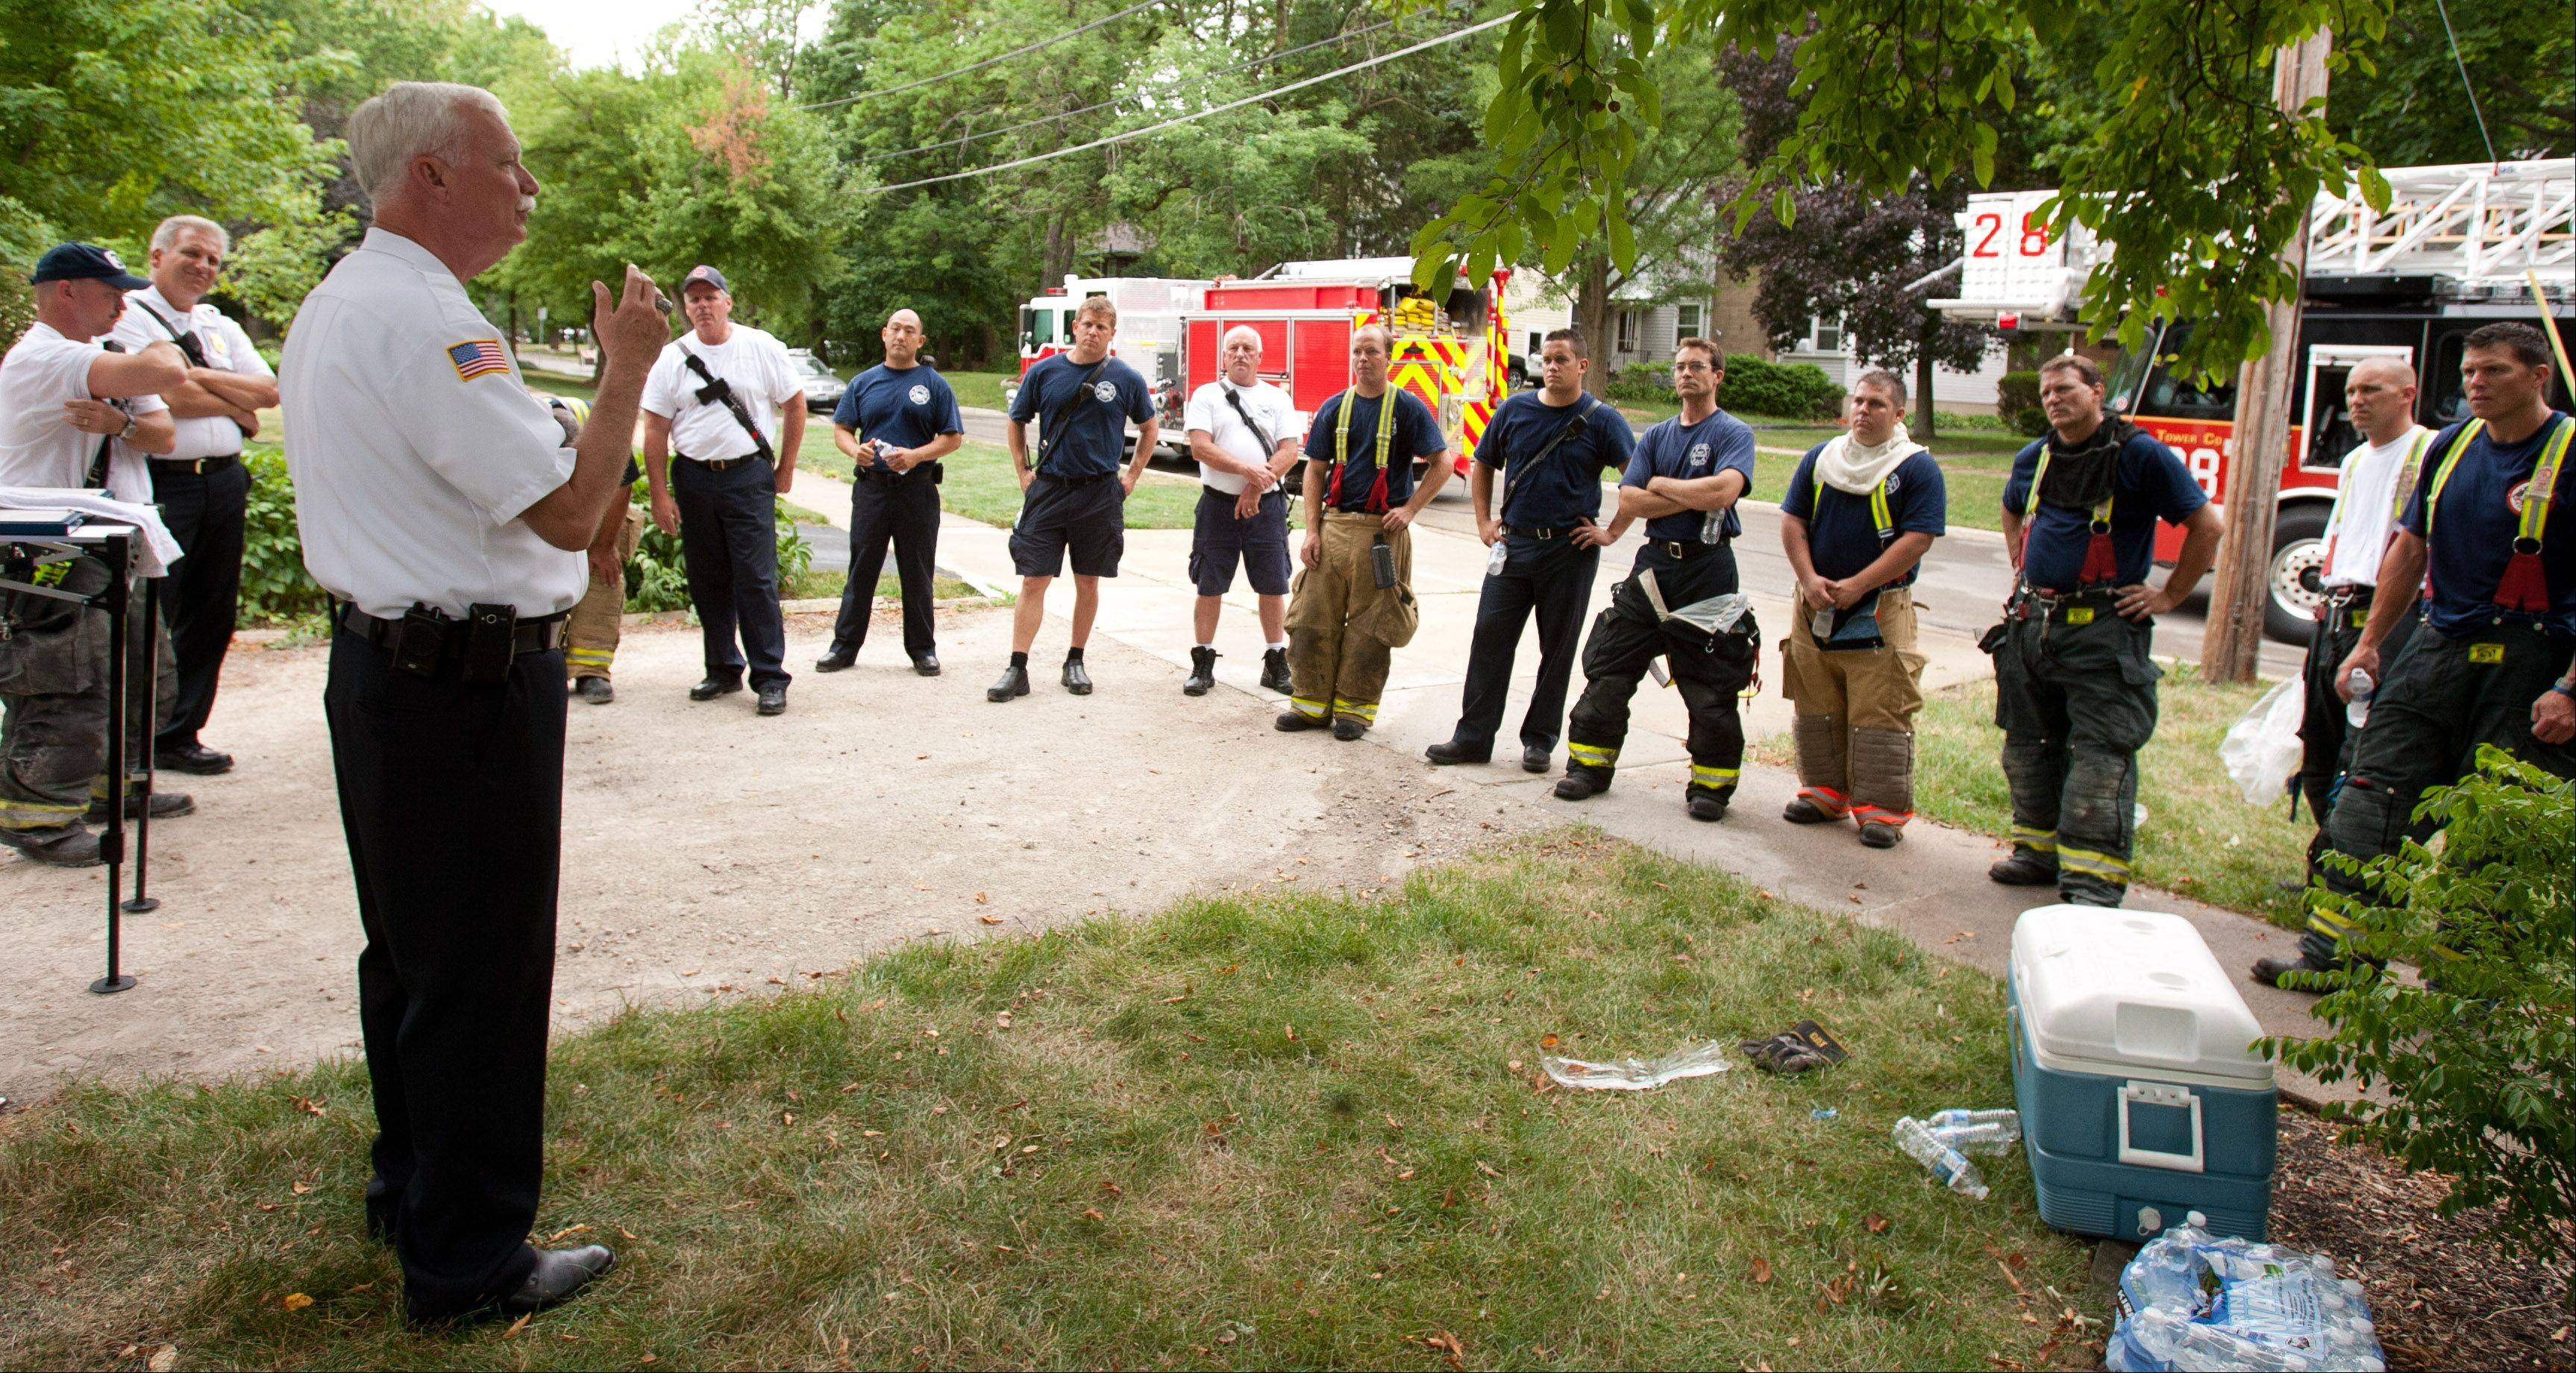 Wheaton Fire Chief Greg Berk, left, discusses a cooperative fire training exercise among the Carol Stream, West Chicago, Winfield and Wheaton fire departments.